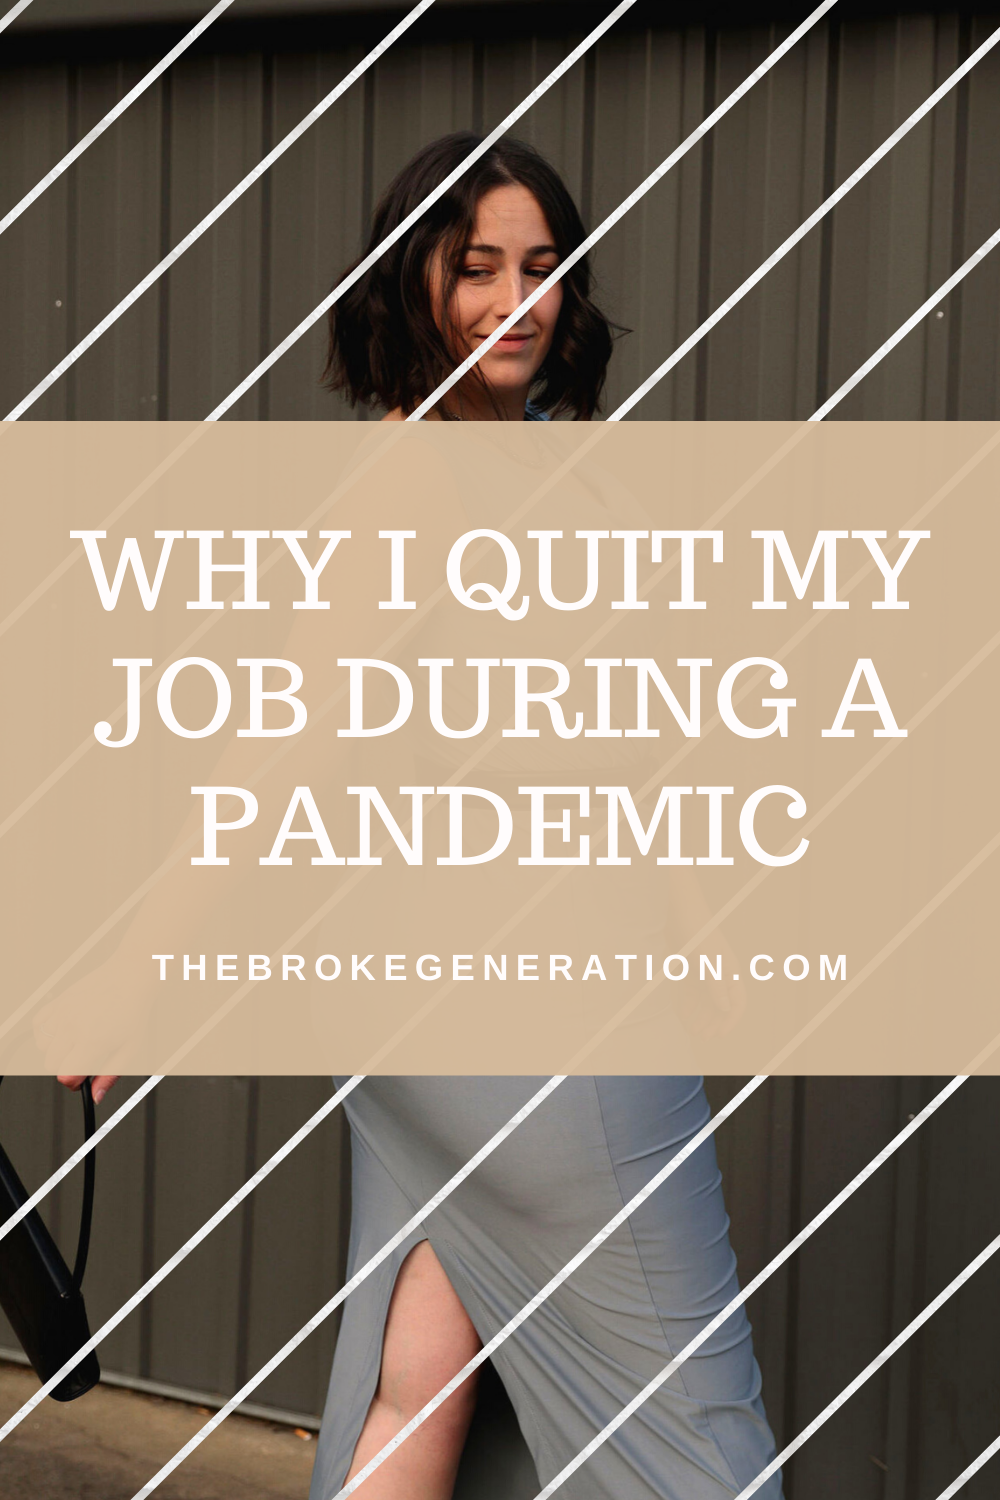 Why I Quit My Job During A Pandemic